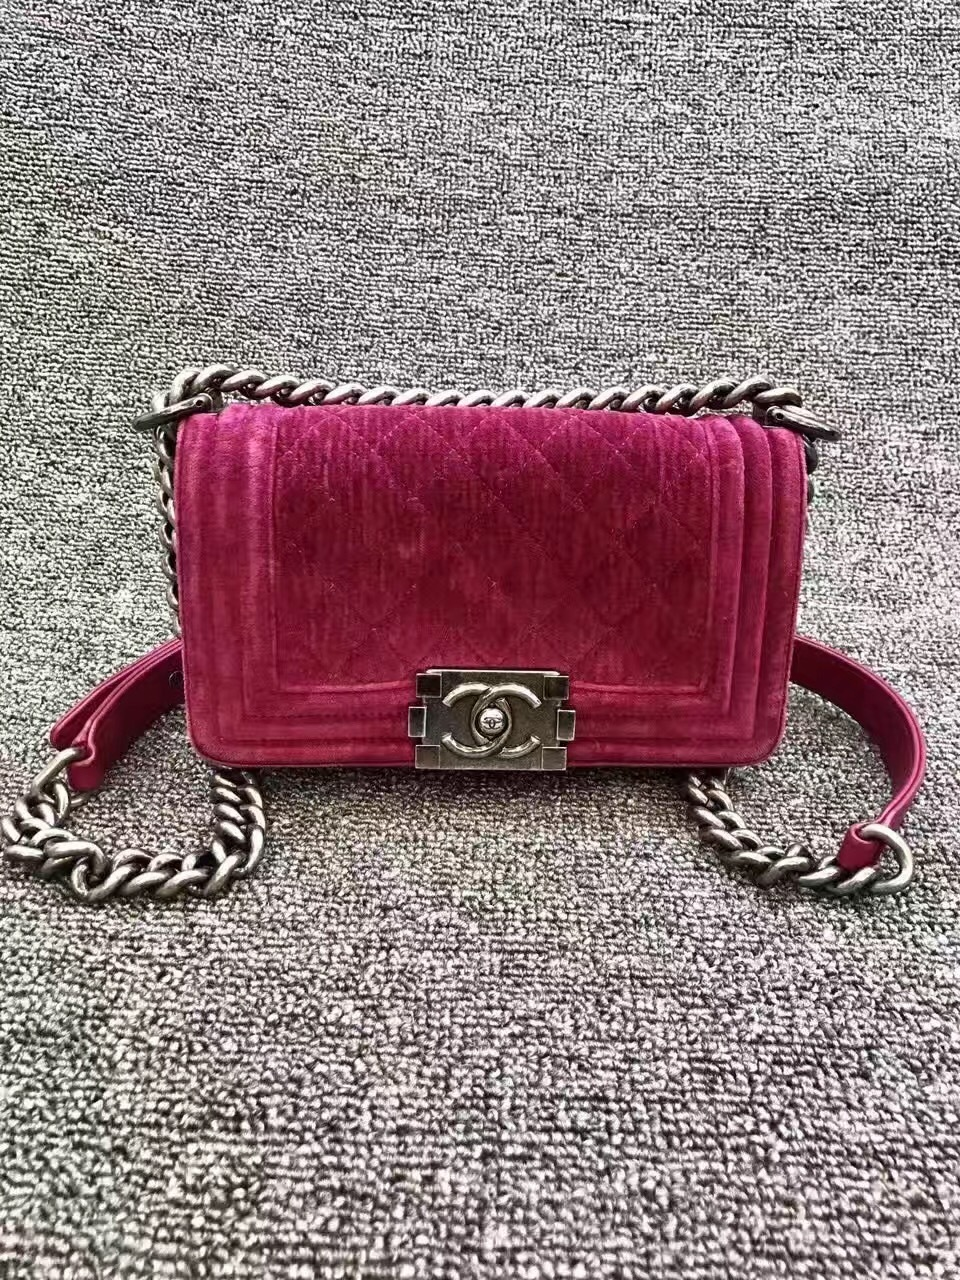 Authentic Chanel Quilted Velvet Small Boy Flap Bag Pink RHW